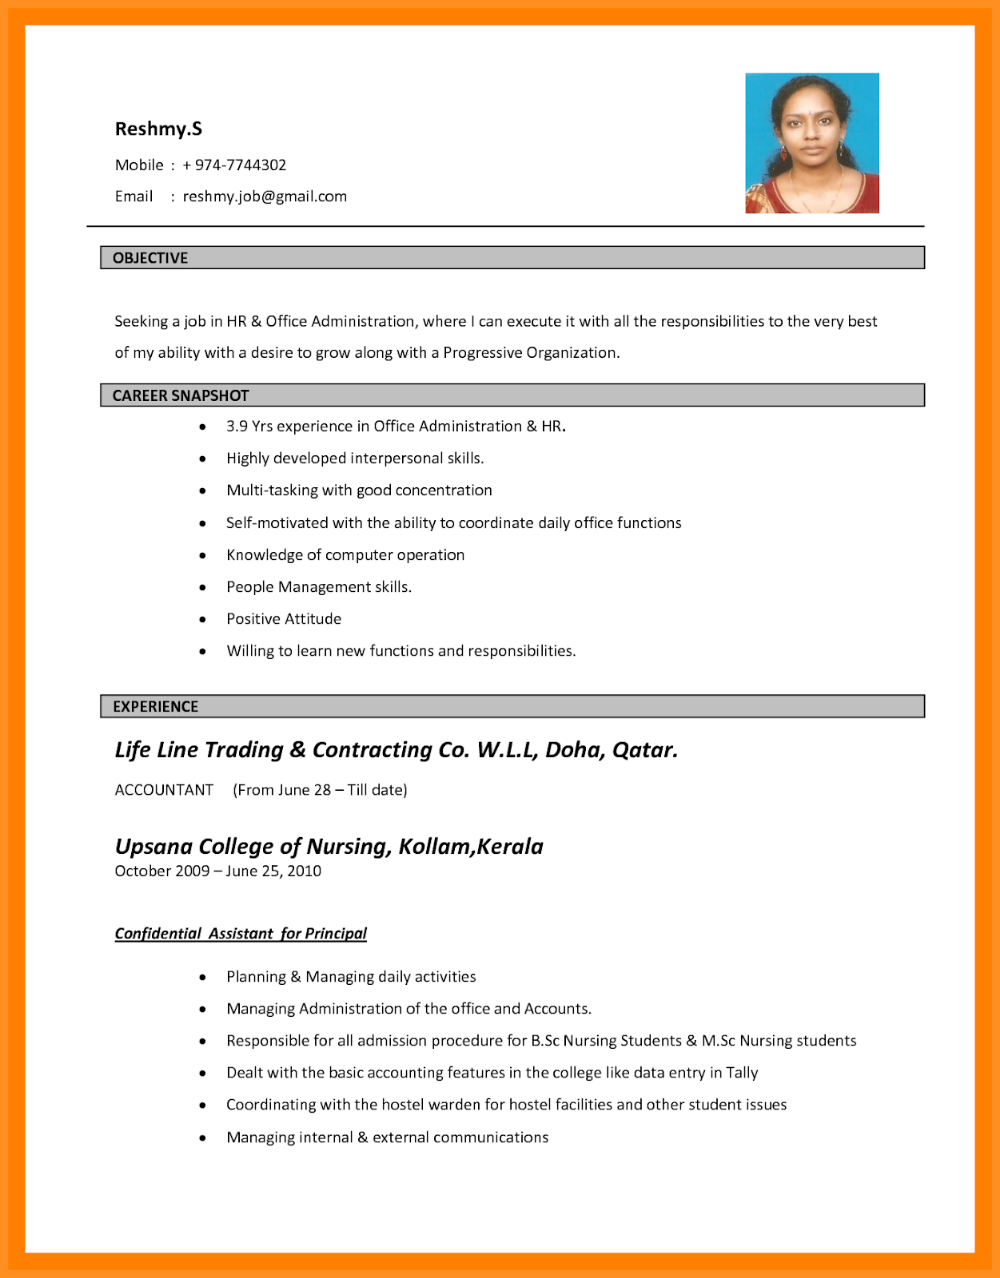 Marriage Cv Template Doc 2019 Marriage Cv Template Download 2020 Marriage Resume Template Wedding Cv Te Bio Data For Marriage Resume Format Job Resume Template